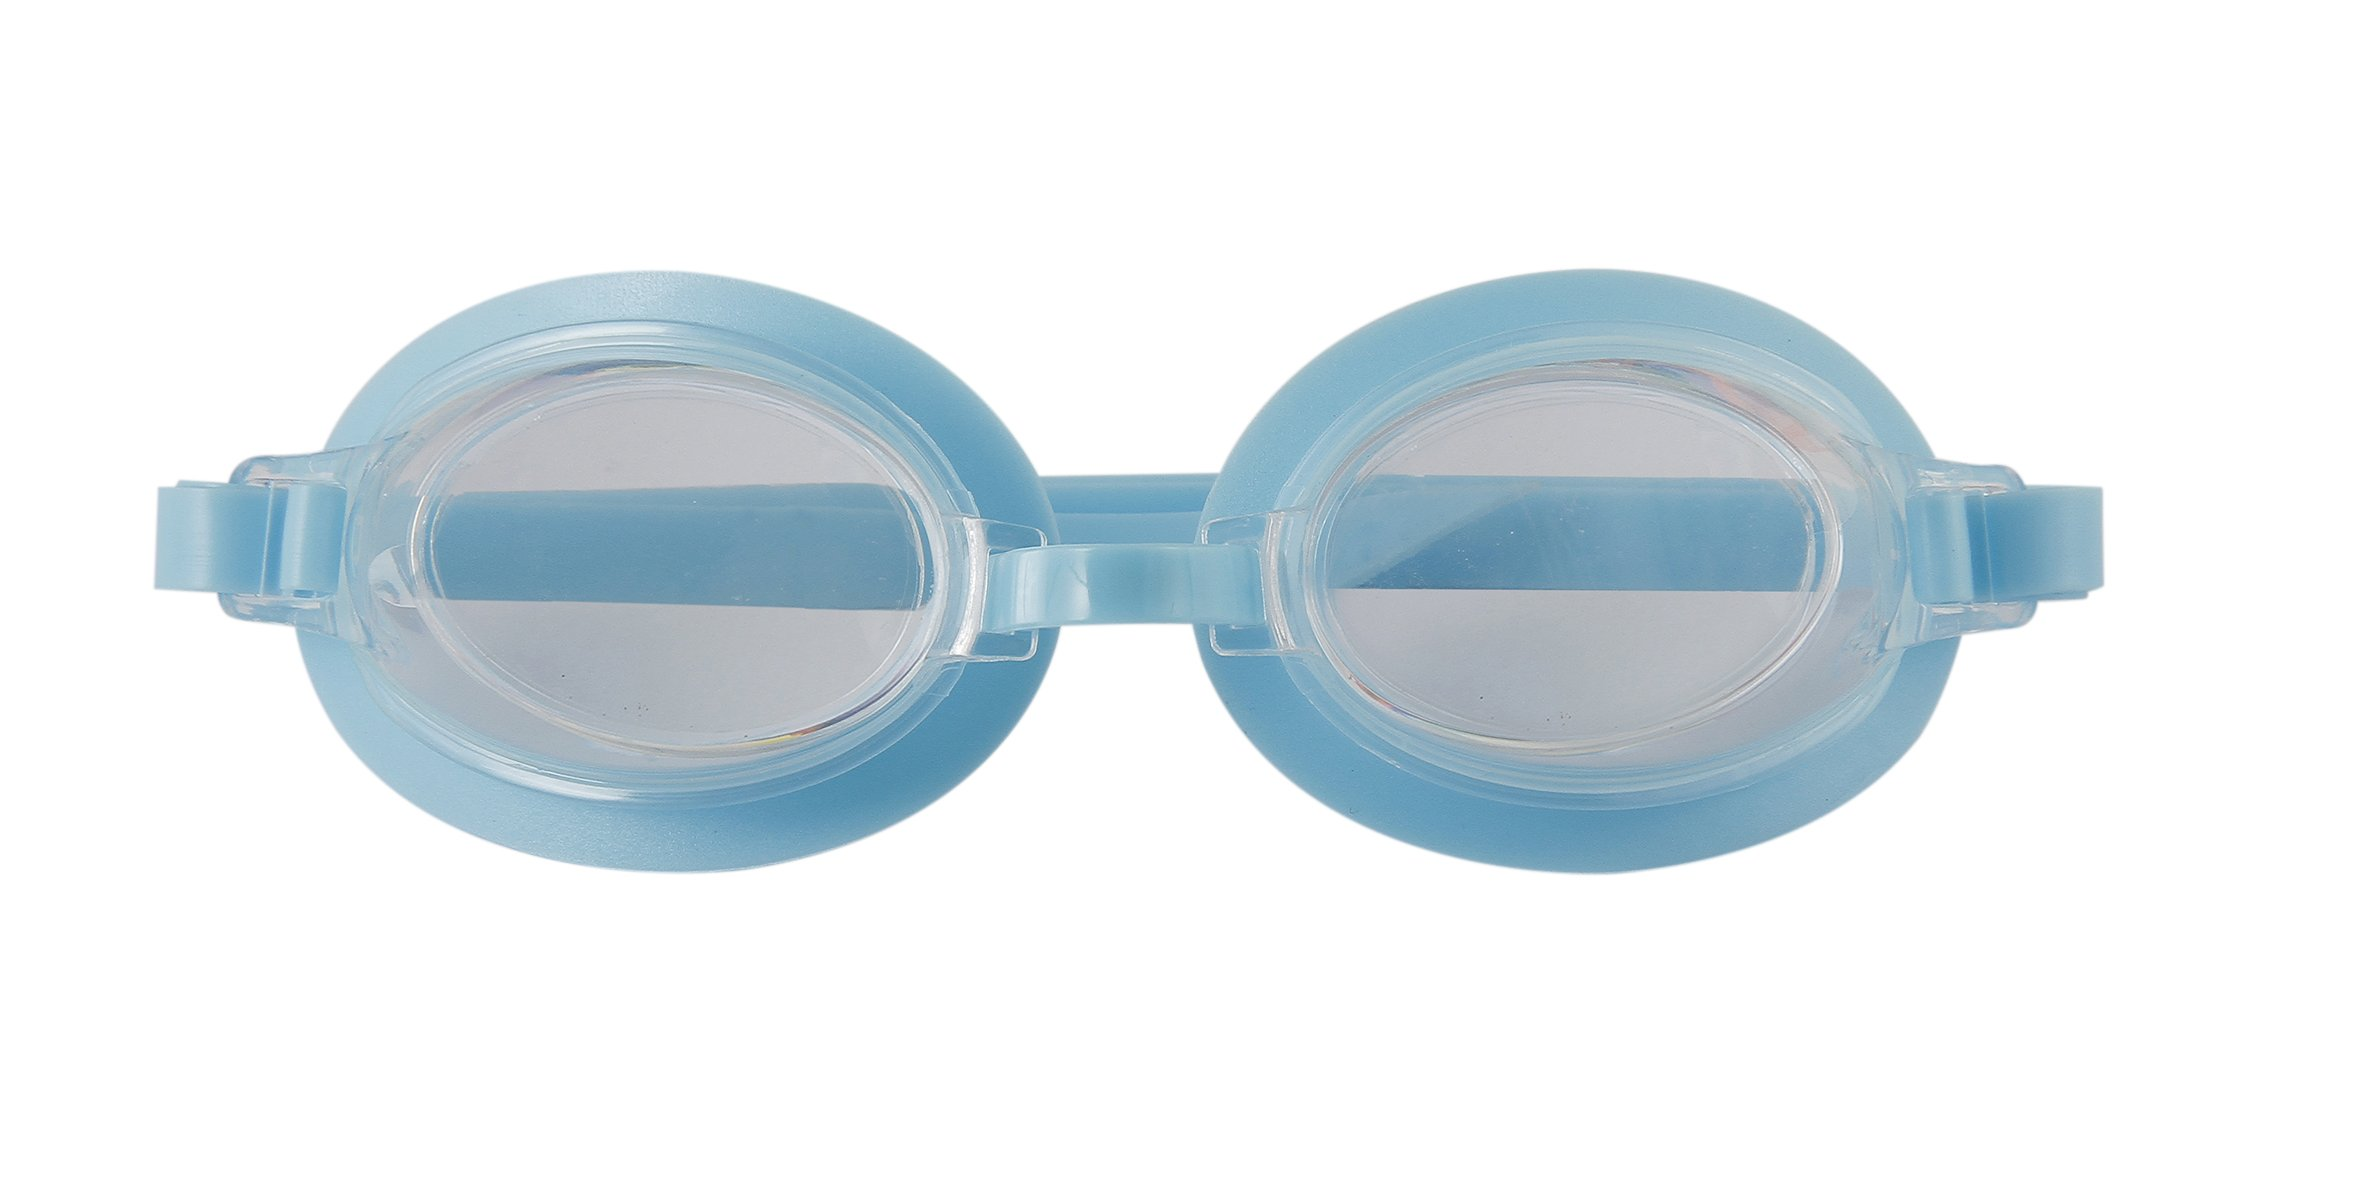 SUMMER WAVES 103''x69''x18'' 3D Rectangular Family Pool with 1 Pair of 3D Goggles. by SUMMER WAVES (Image #4)